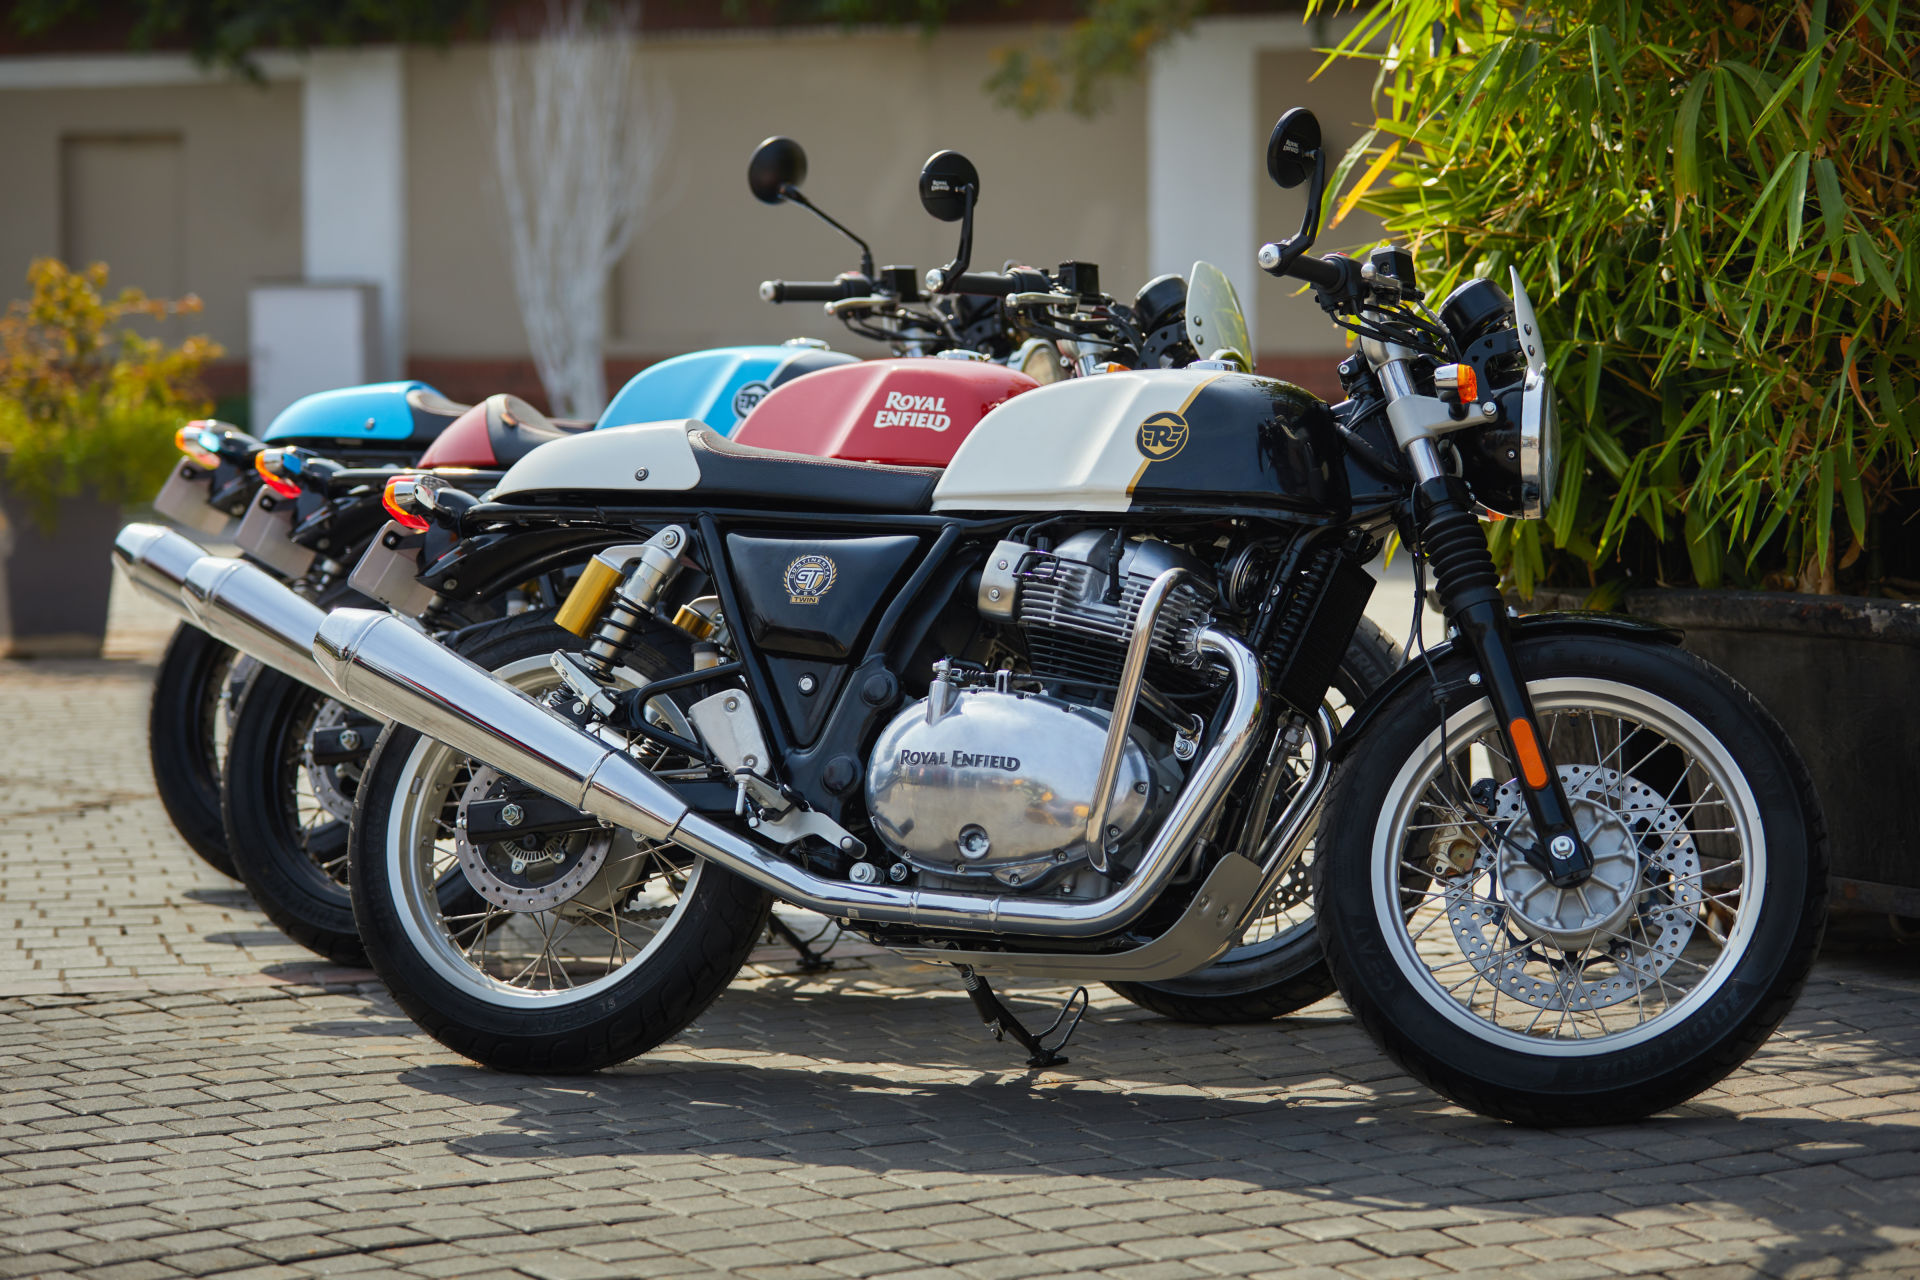 Royal Enfield reveals new colour way for its 650 Twins.